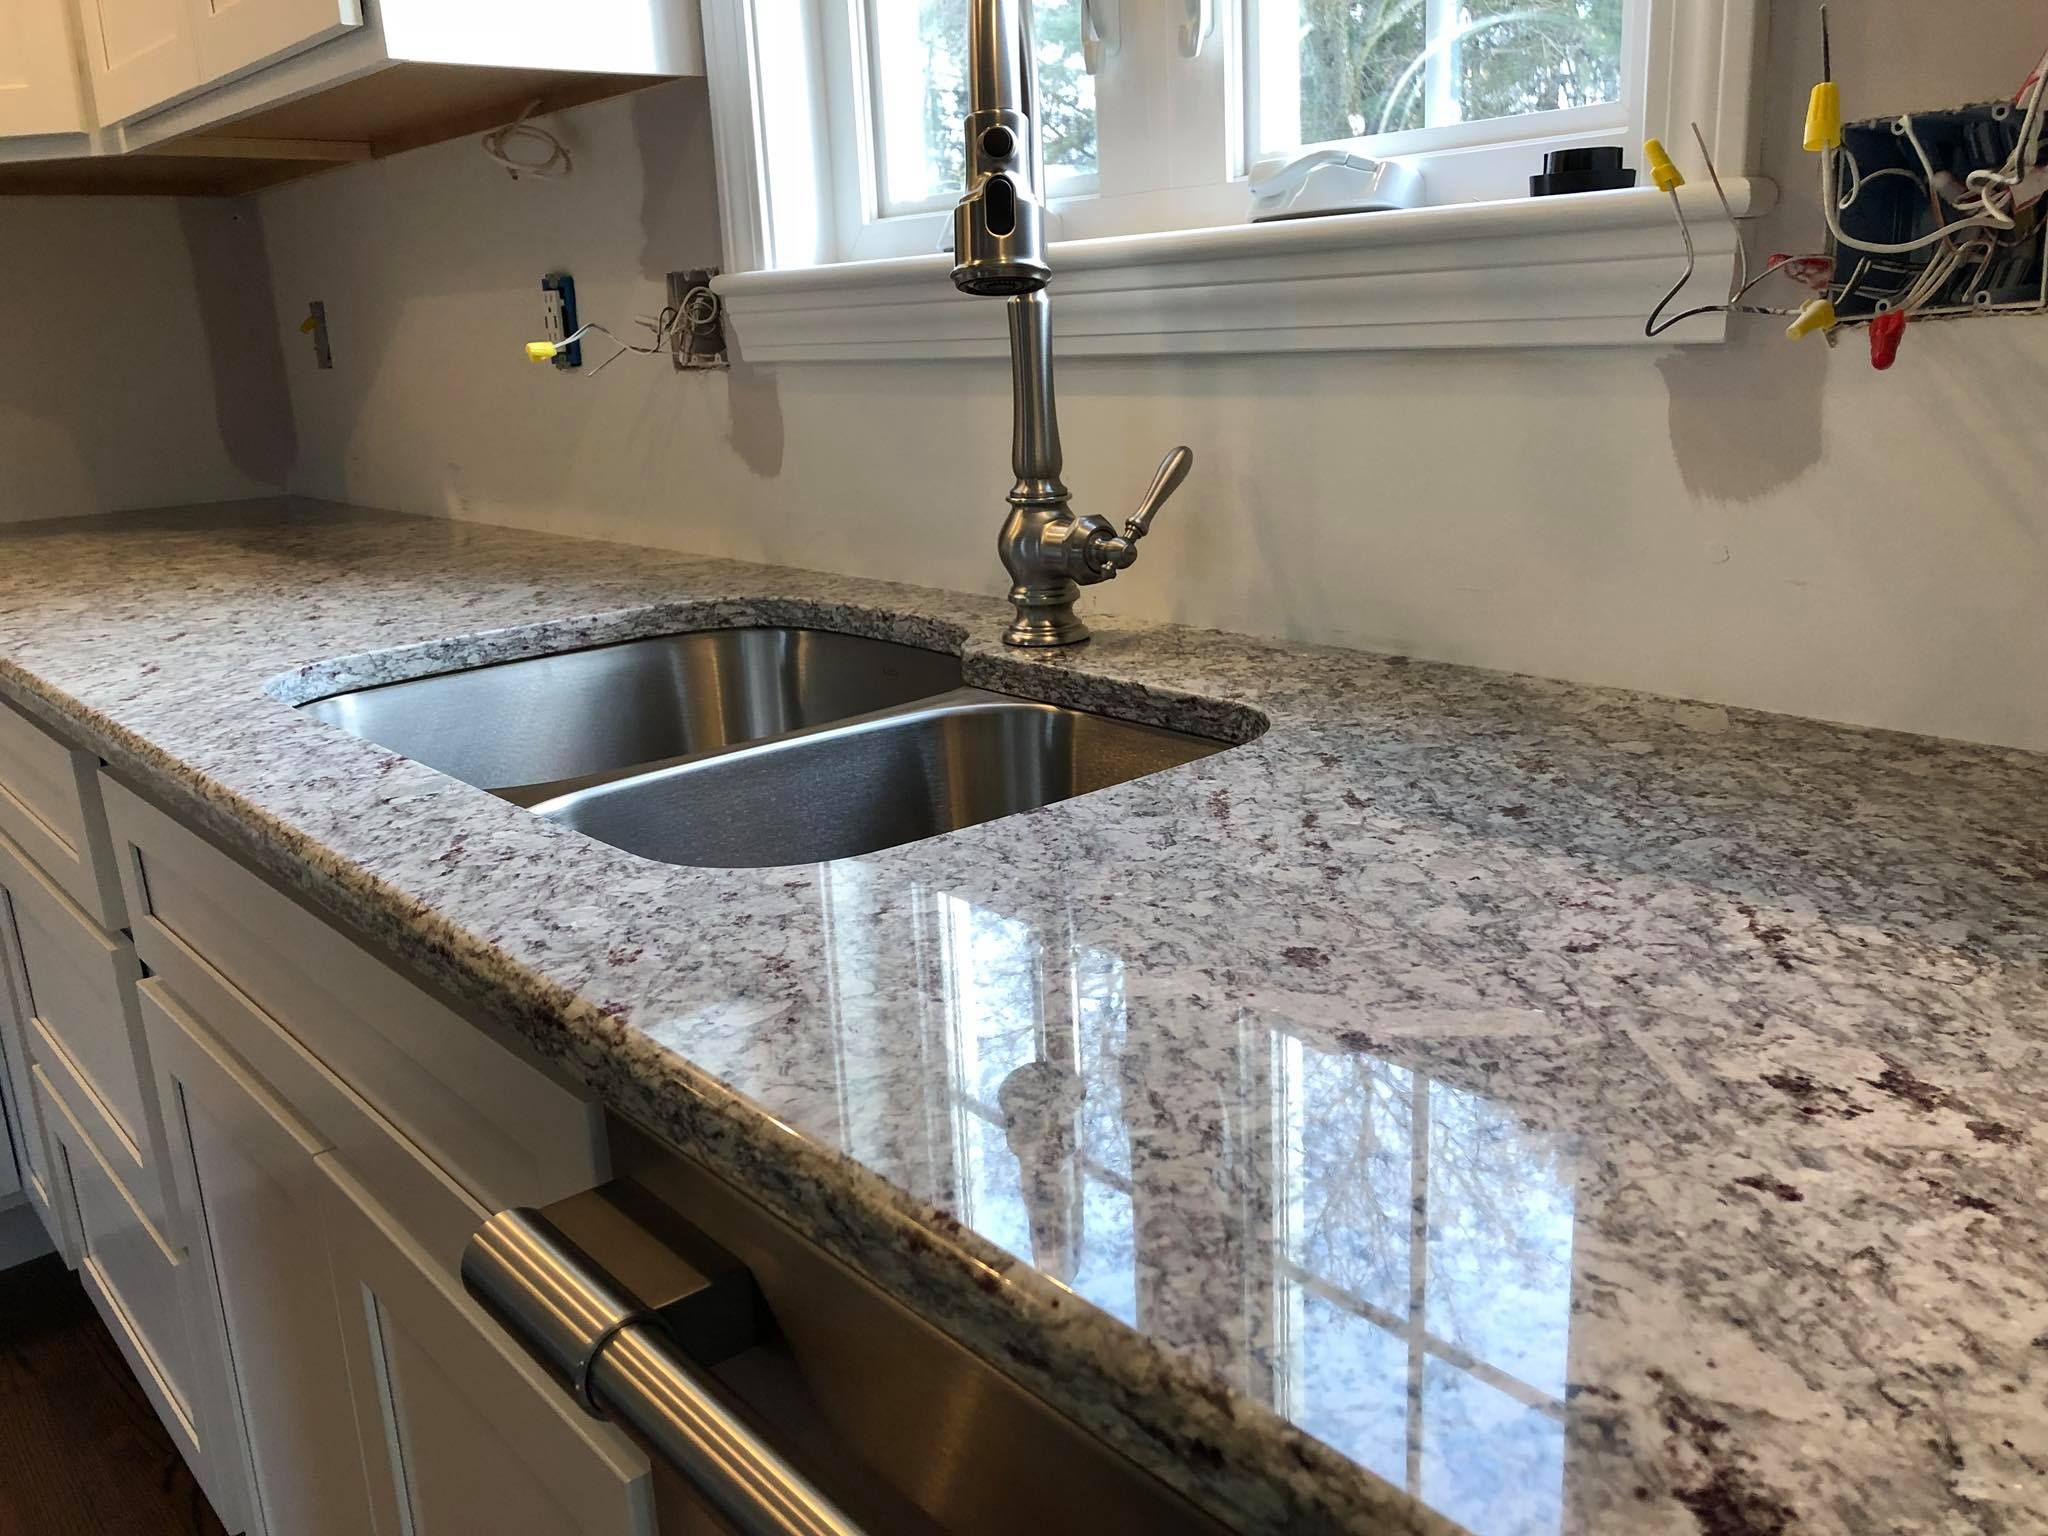 Ceramic Coatings on Kitchen Counter tops